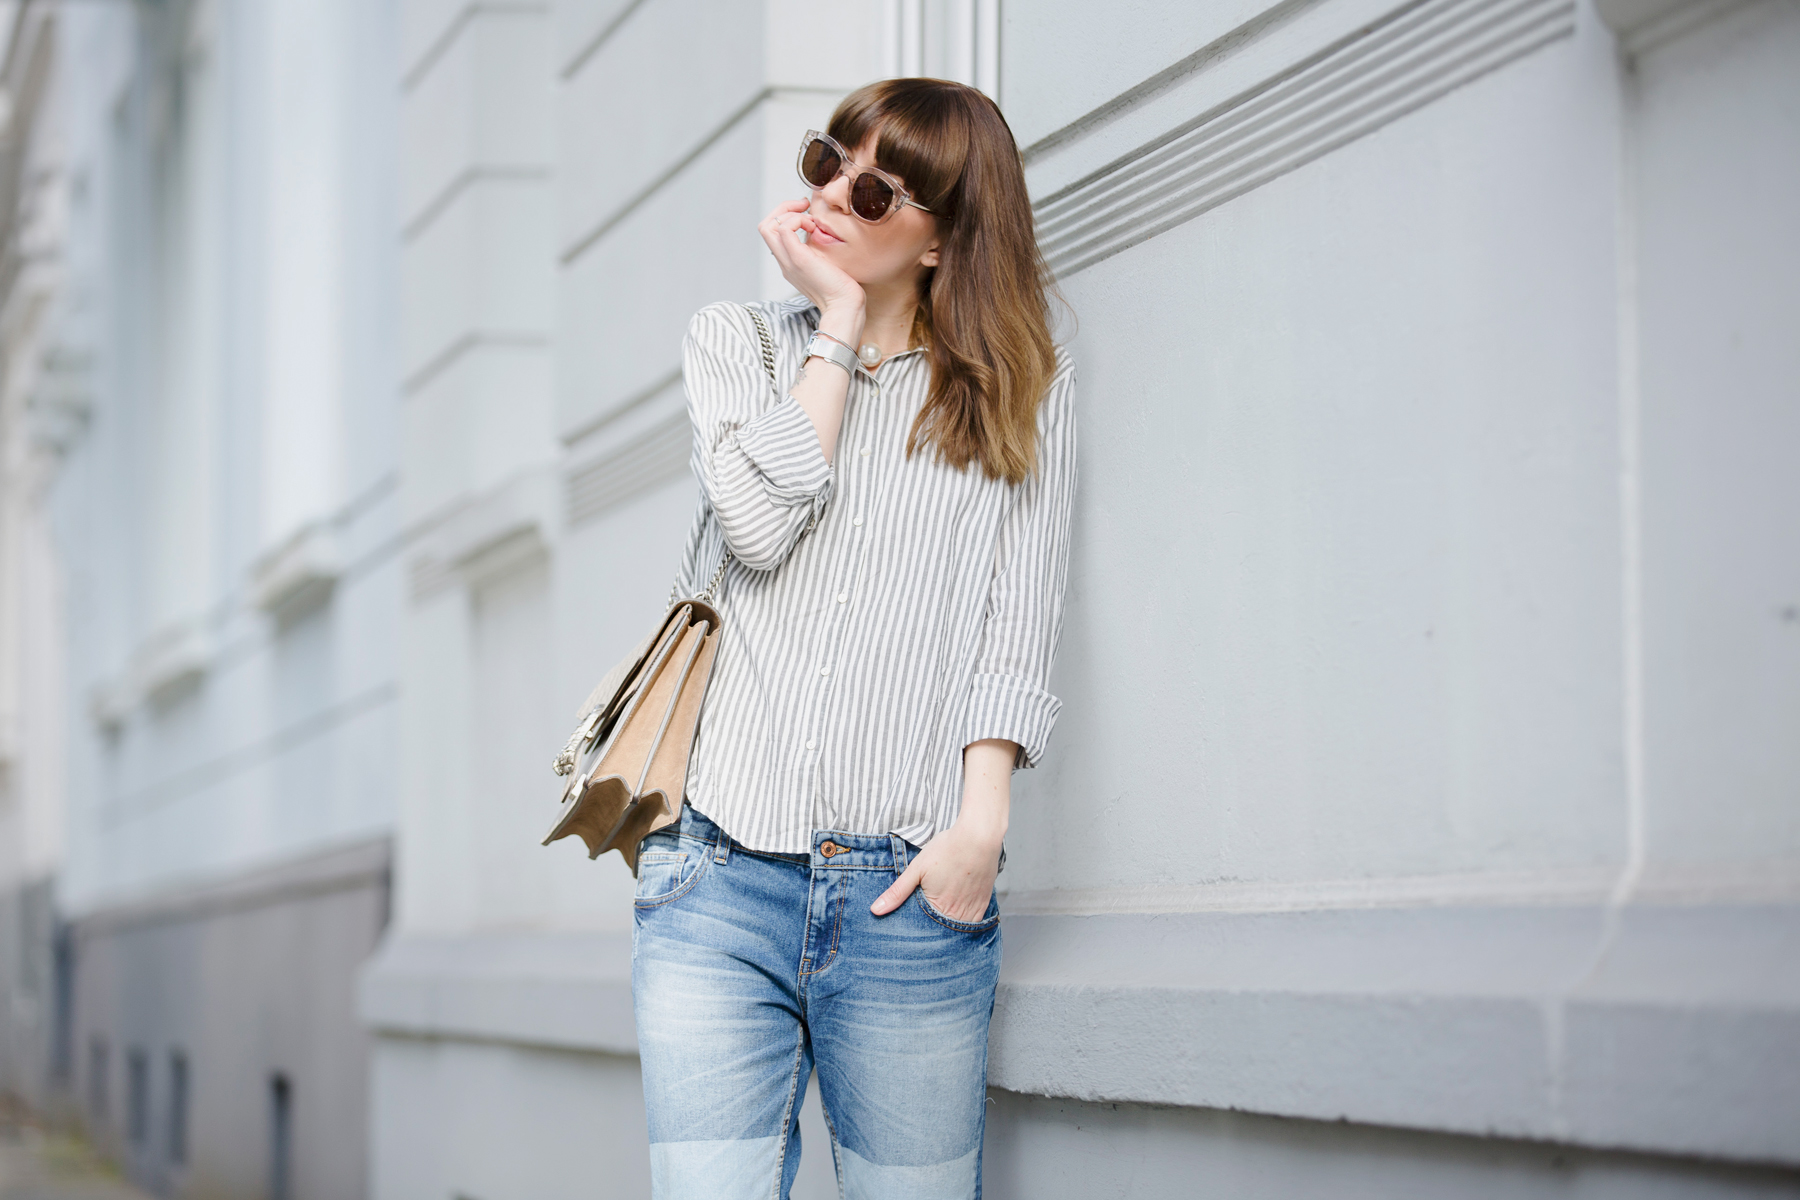 francaise striped shirt parisienne style bangs brunette jeans chanel lookalike heine pumps chic luxury gucci dionysus bag sun spring outfit ootd look le specs fashionblogger ricarda schernus cats & dogs blog 1